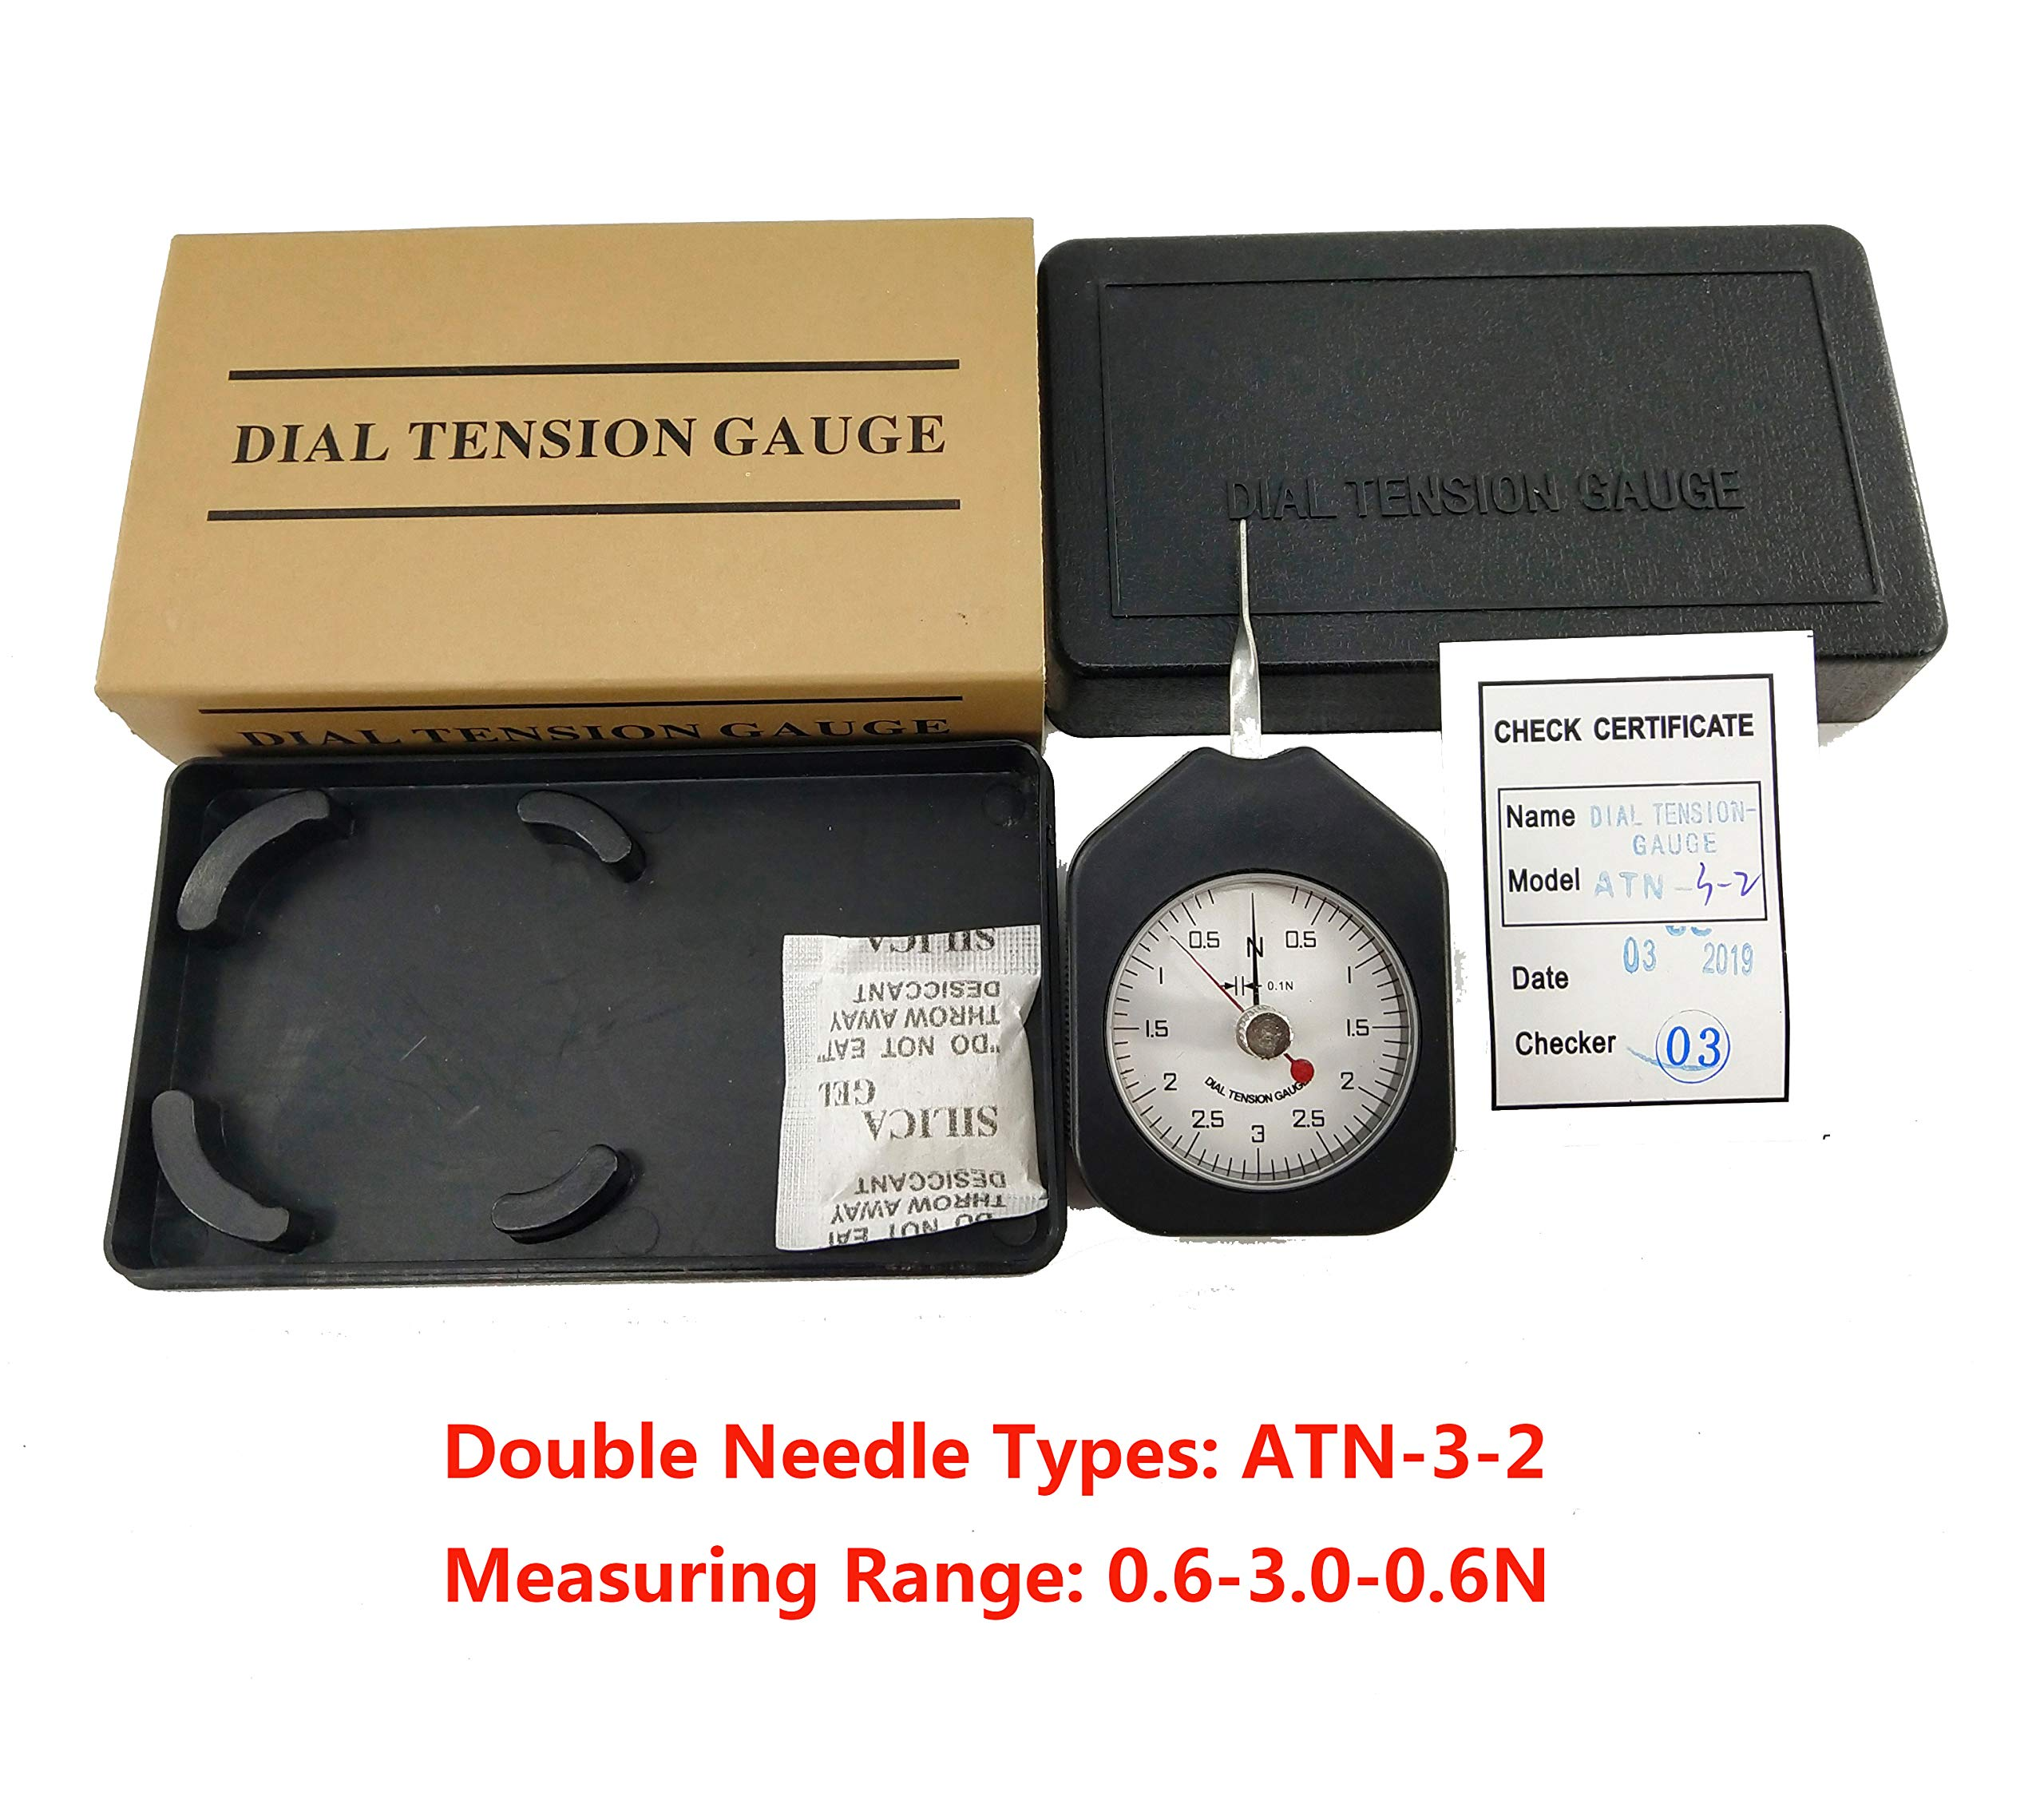 HFBTE ATN-3-2 Double Pointer Mini Tension Gauge Tensionmeter with Measuring Range 0.6-3.0-0.6N Division Value 0.1N by HFBTE